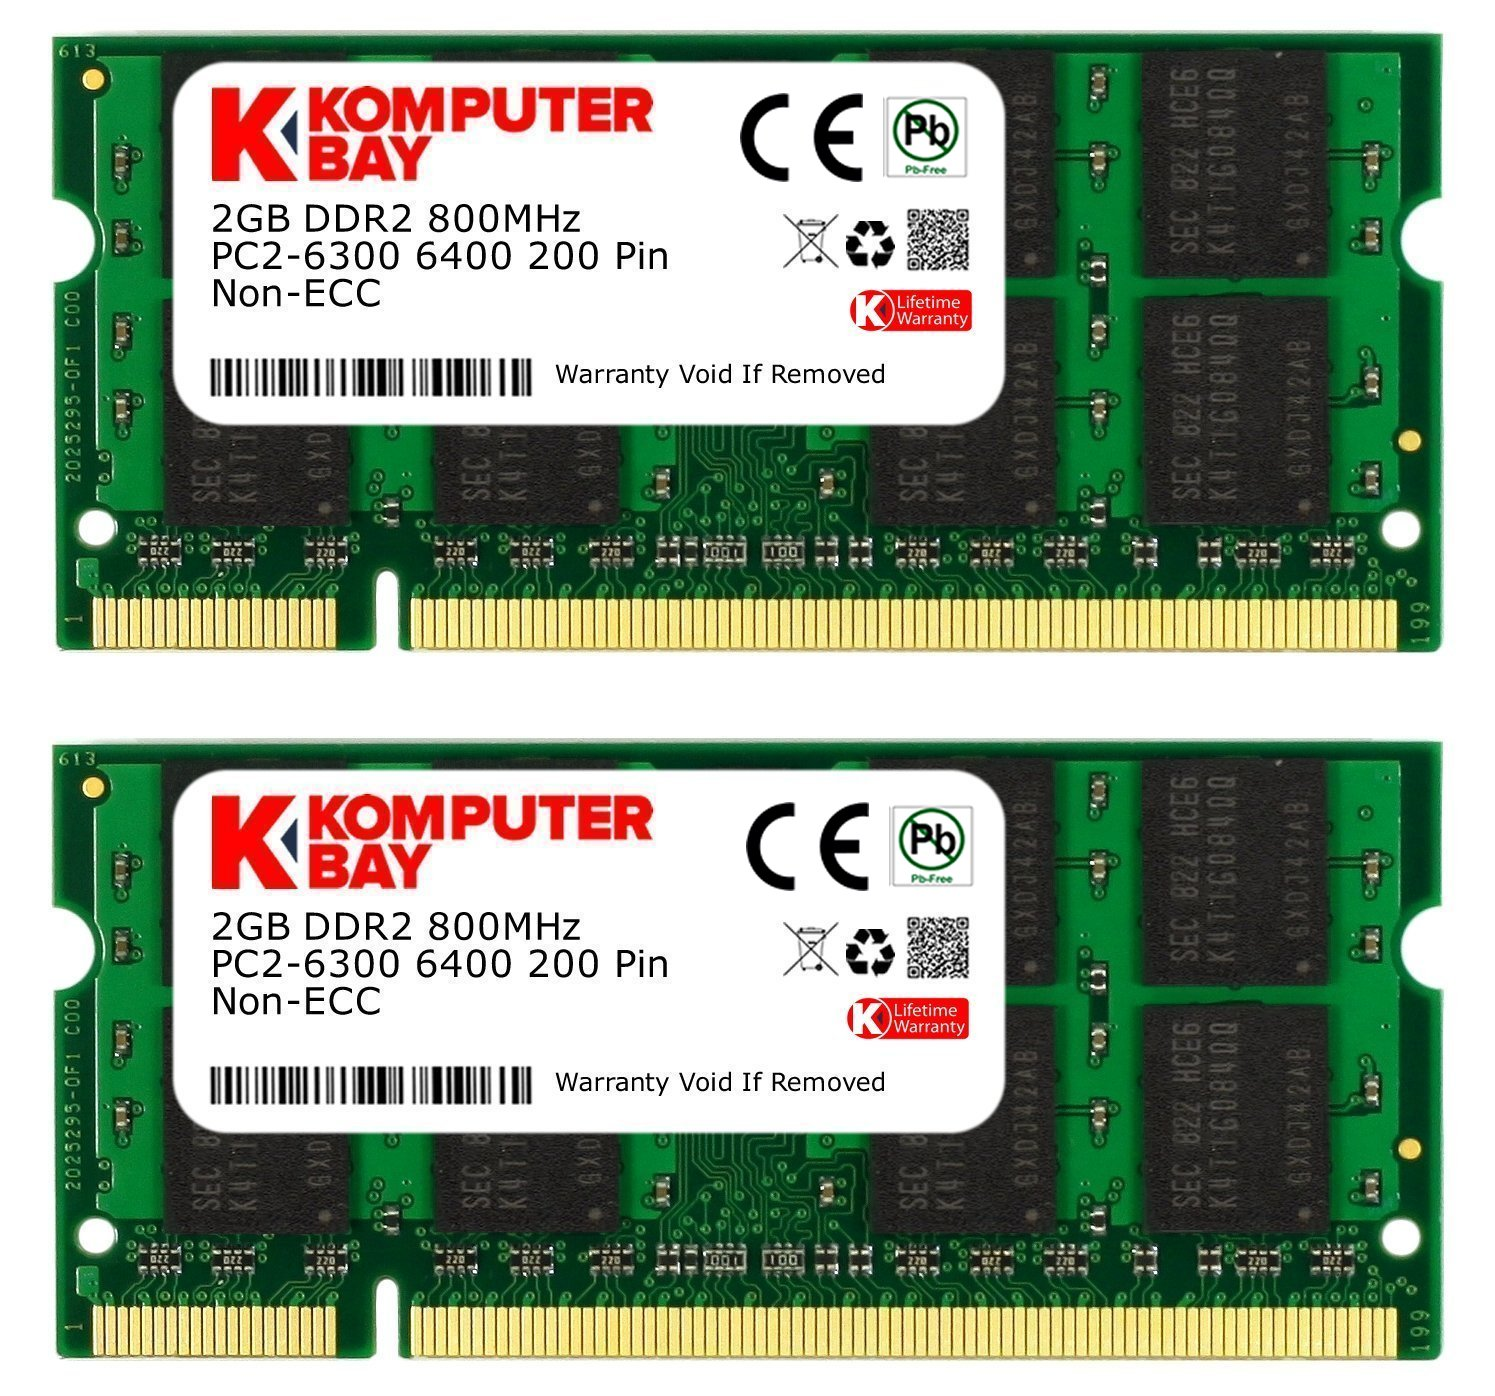 Memoria Ram 4gb Komputerbay Kit (2gbx2) Ddr2 800mhz (pc2-6400) Cl6 Sodimm 200-pin 1.8v Modules With Lifetime Warr